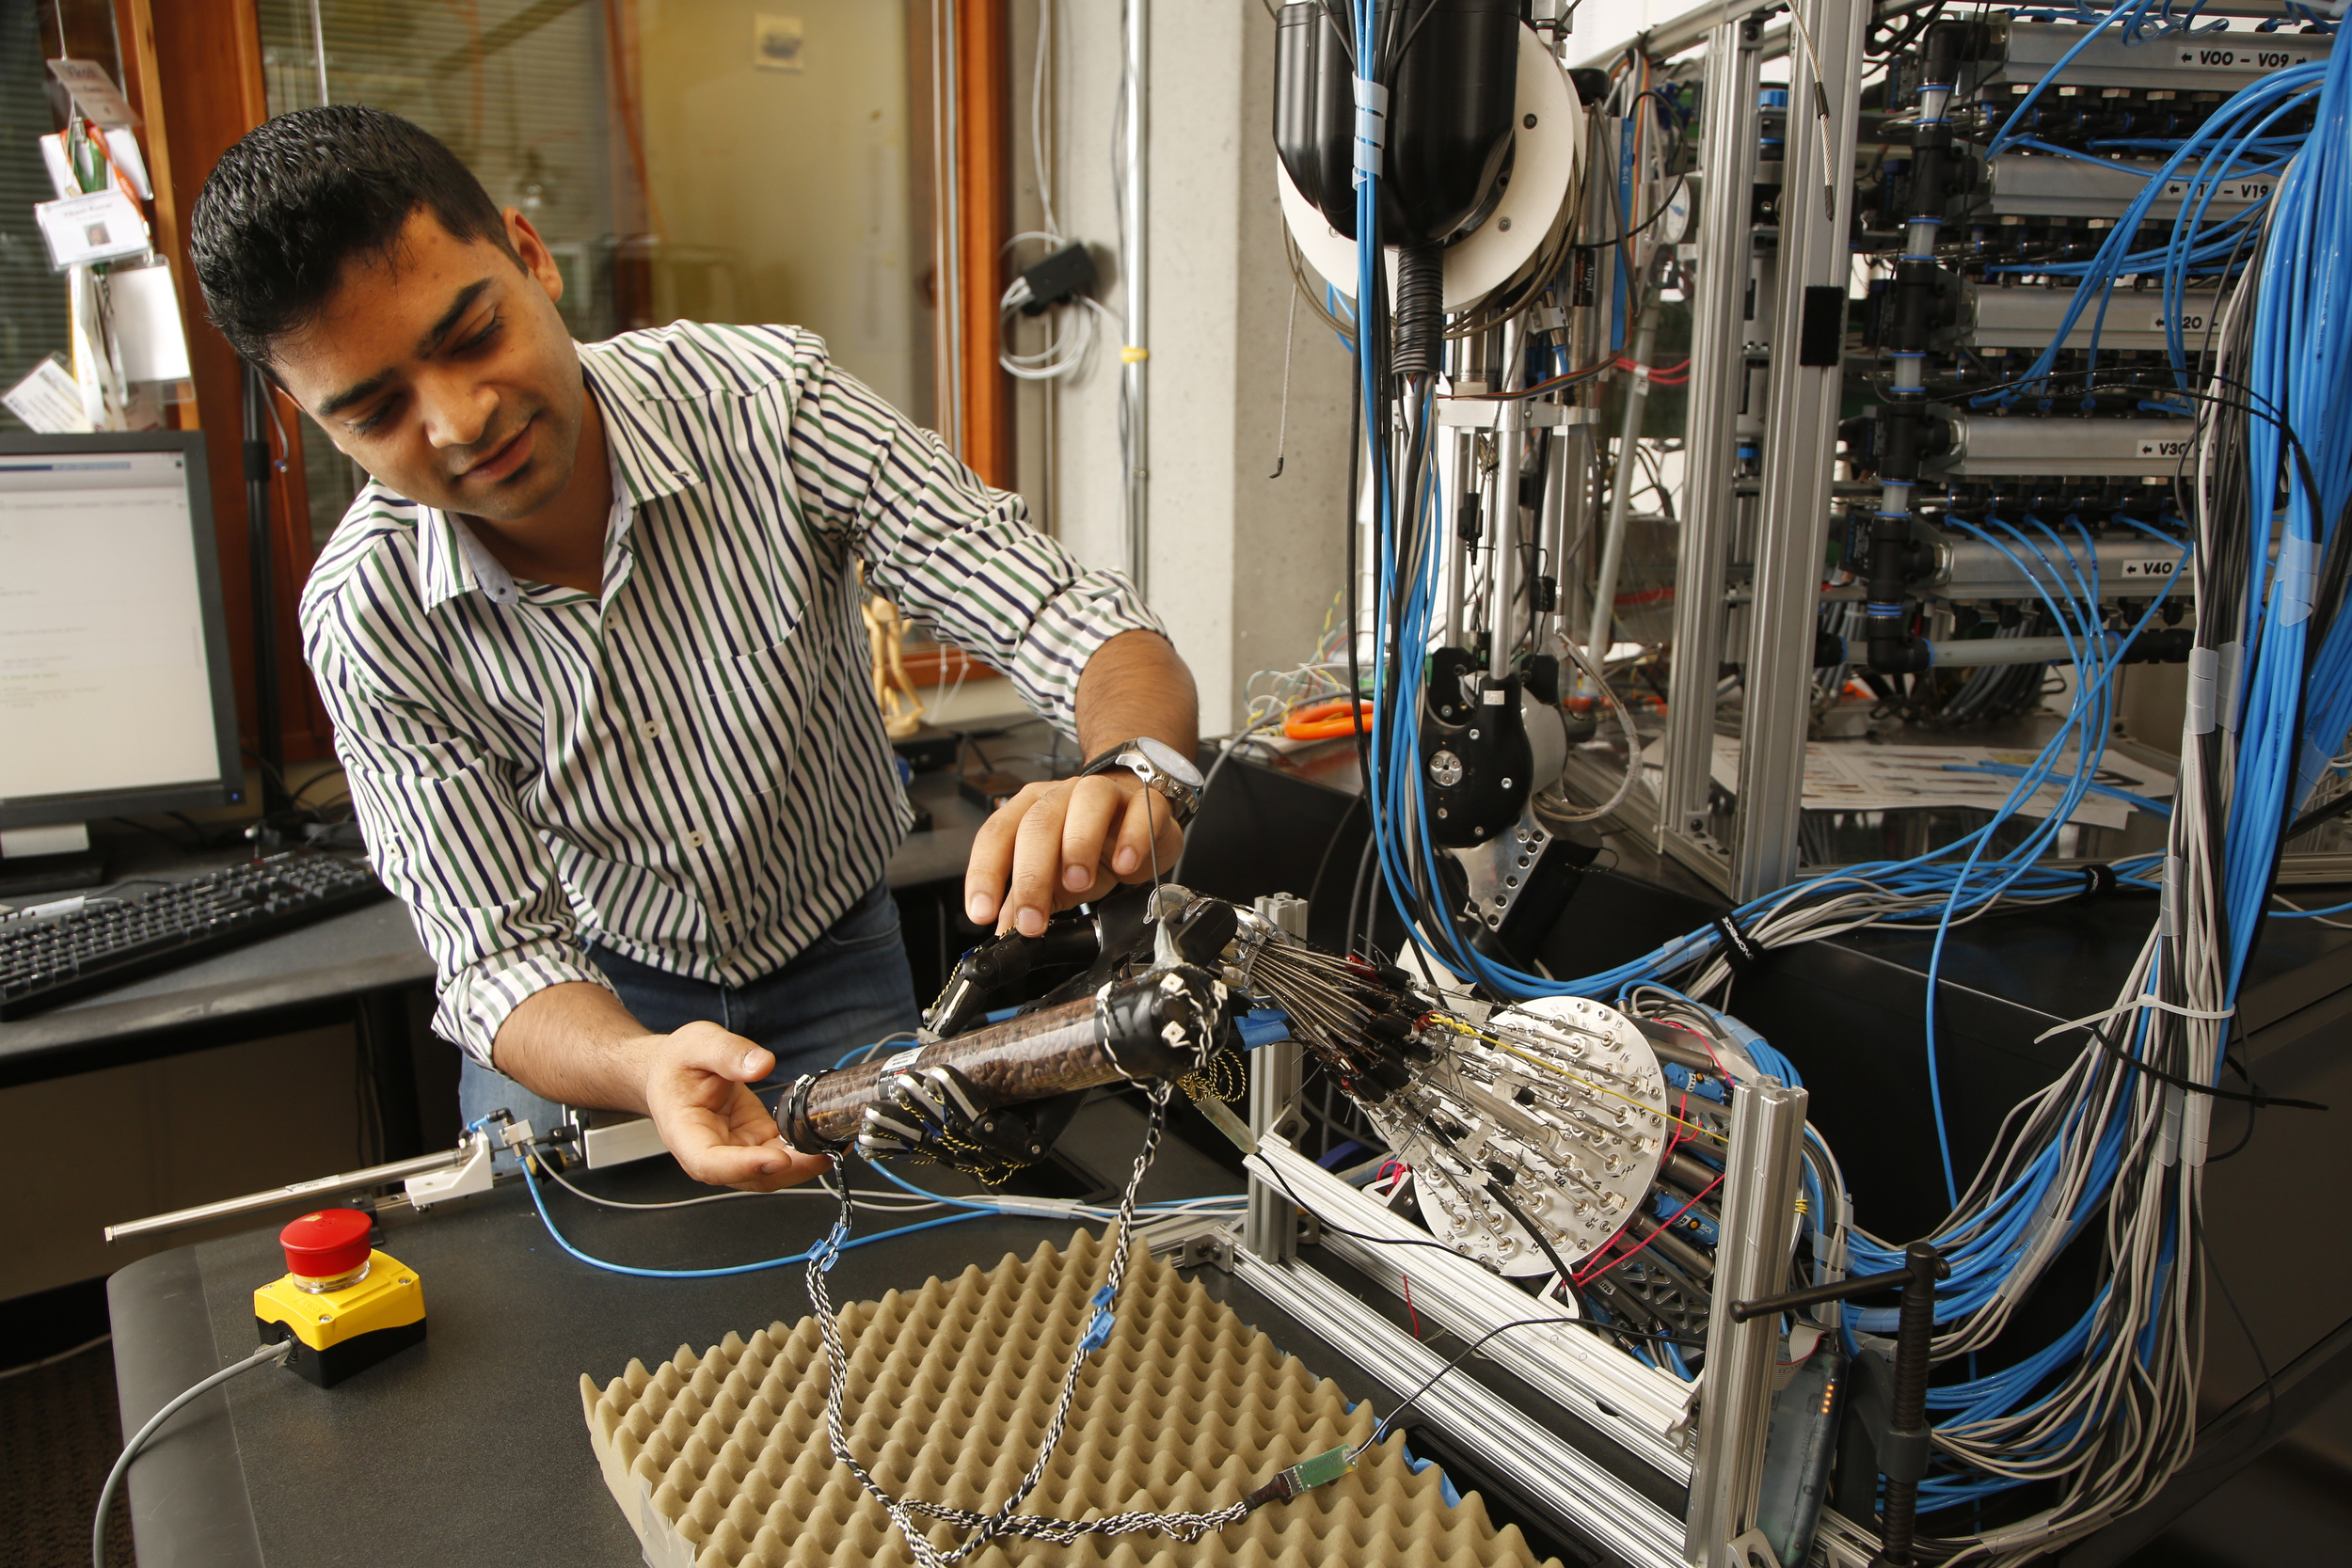 UW computer science and engineering doctoral student Vikash Kumar custom built this robot hand, which has 40 tendons, 24 joints and more than 130 sensors. University of Washington